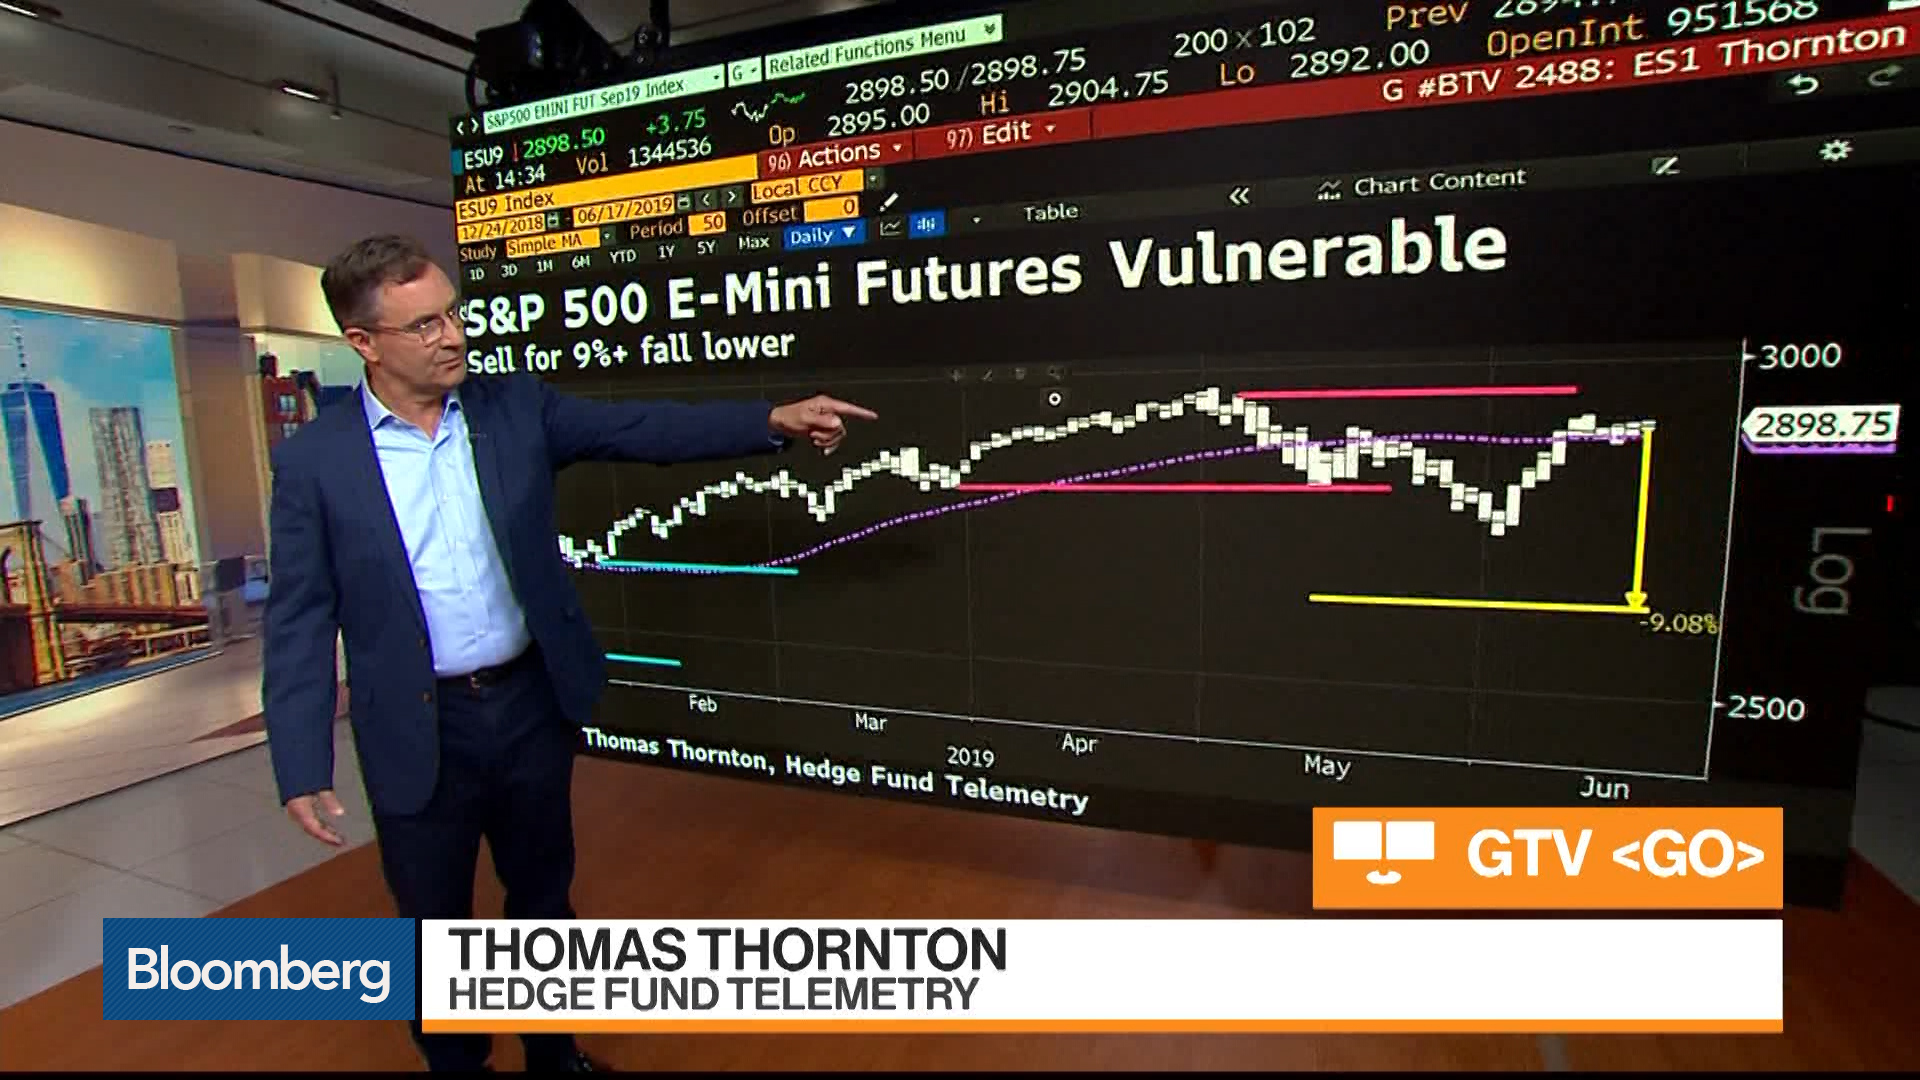 Hedge Fund Telemetry's Thornton Says Short the S&P 500 E-Minis